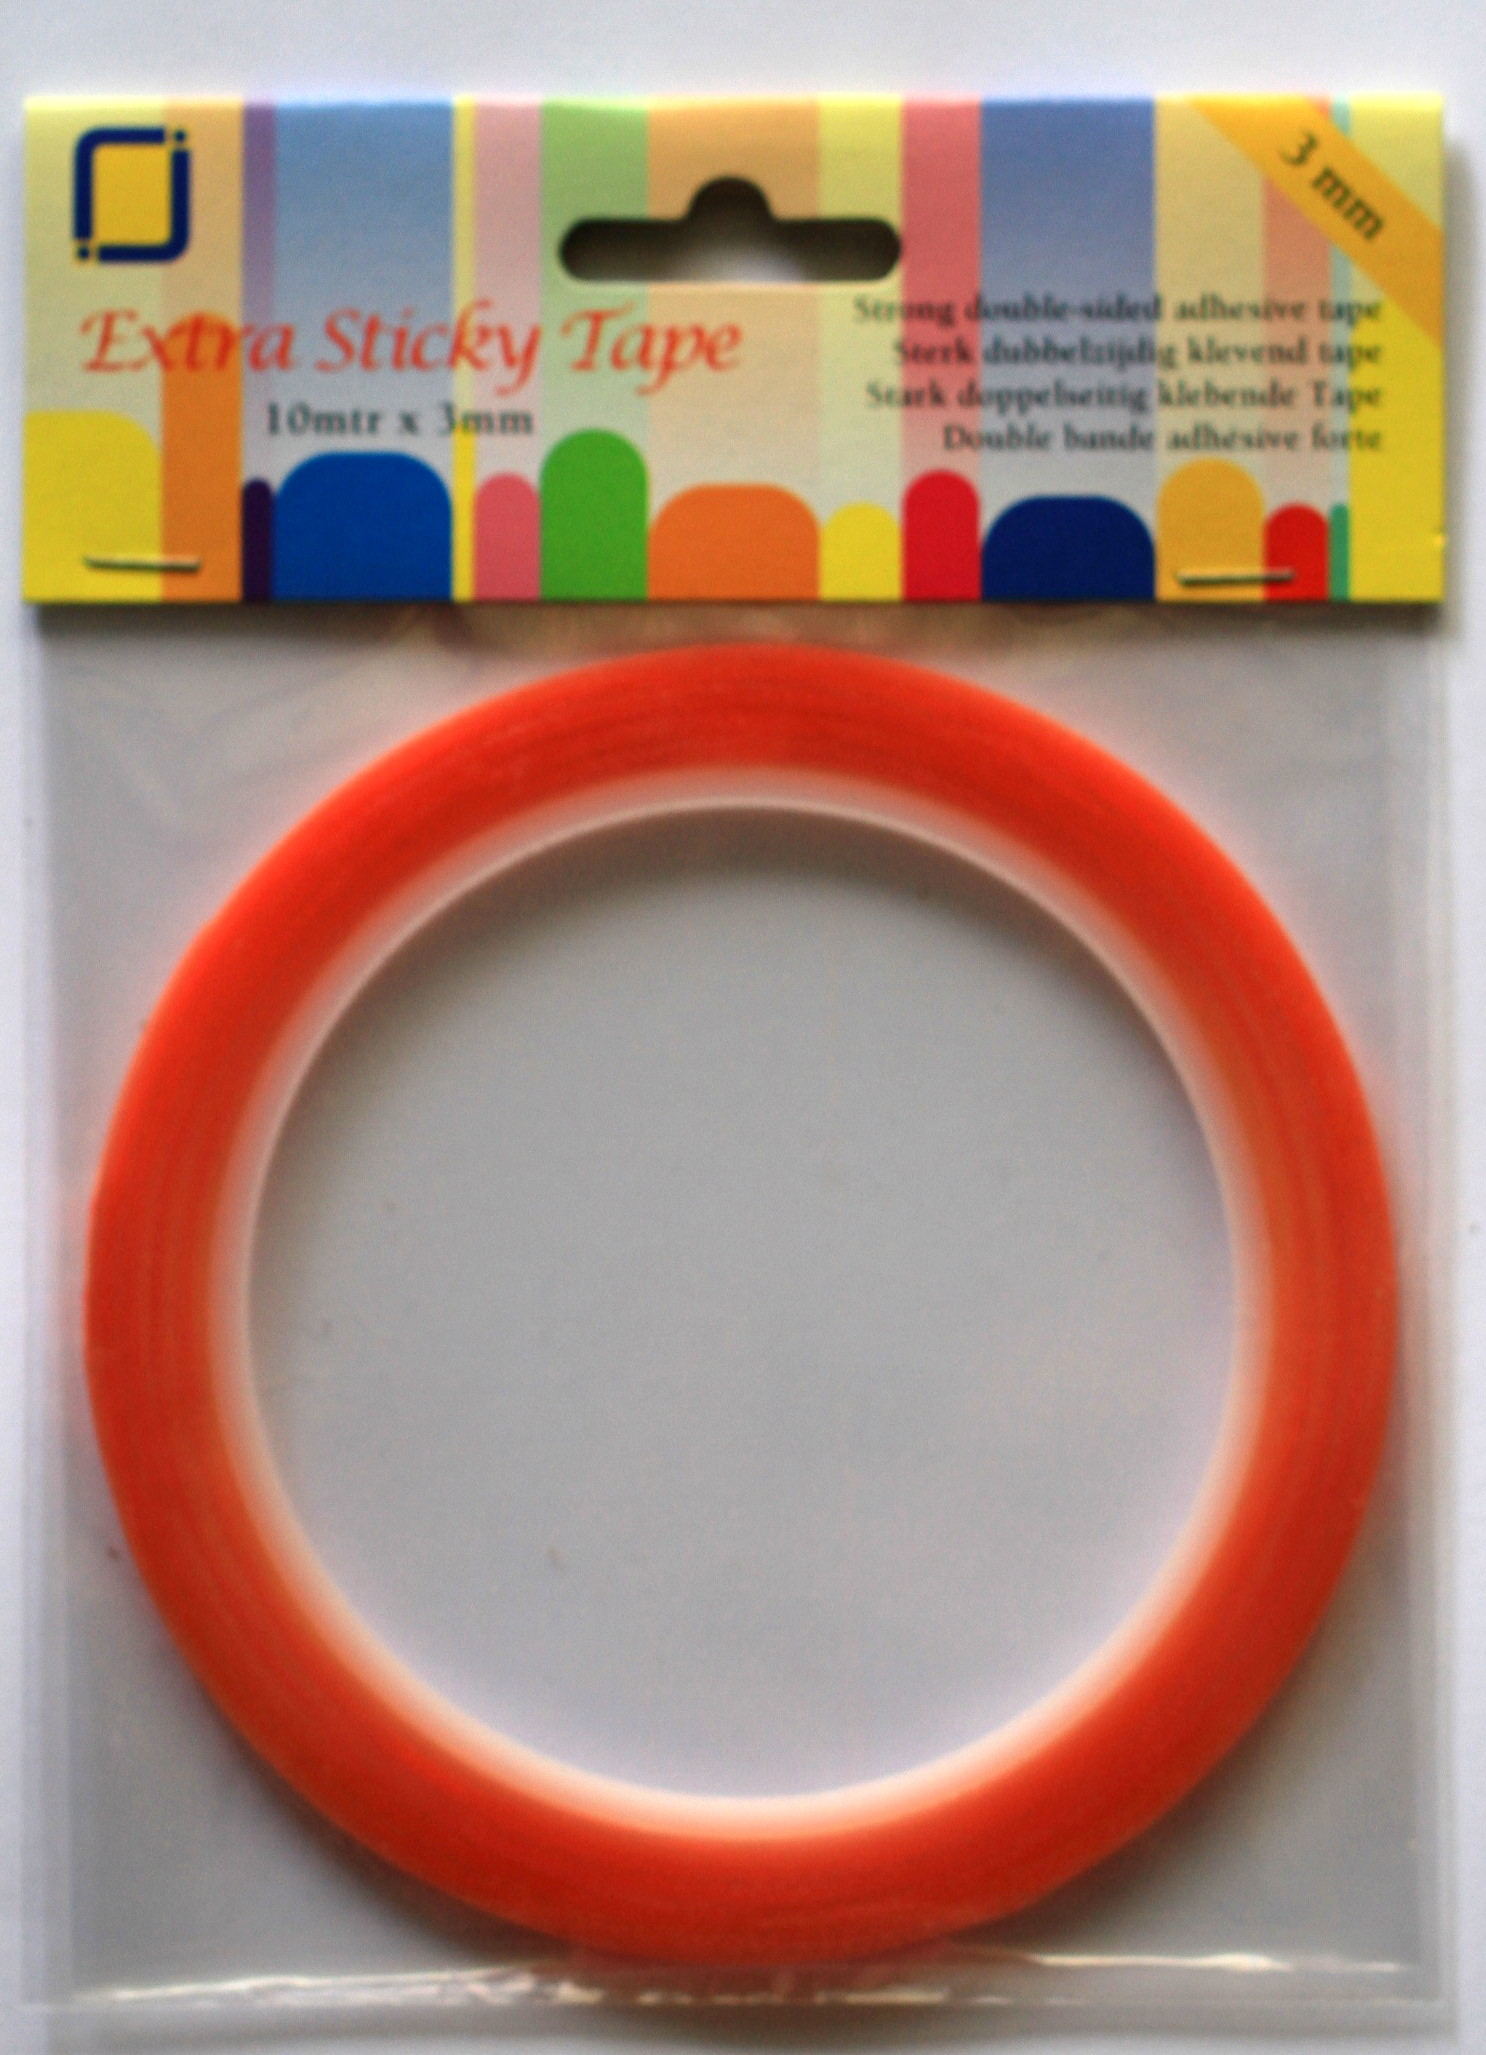 Extra Sticky Double Sided Tape 3mm